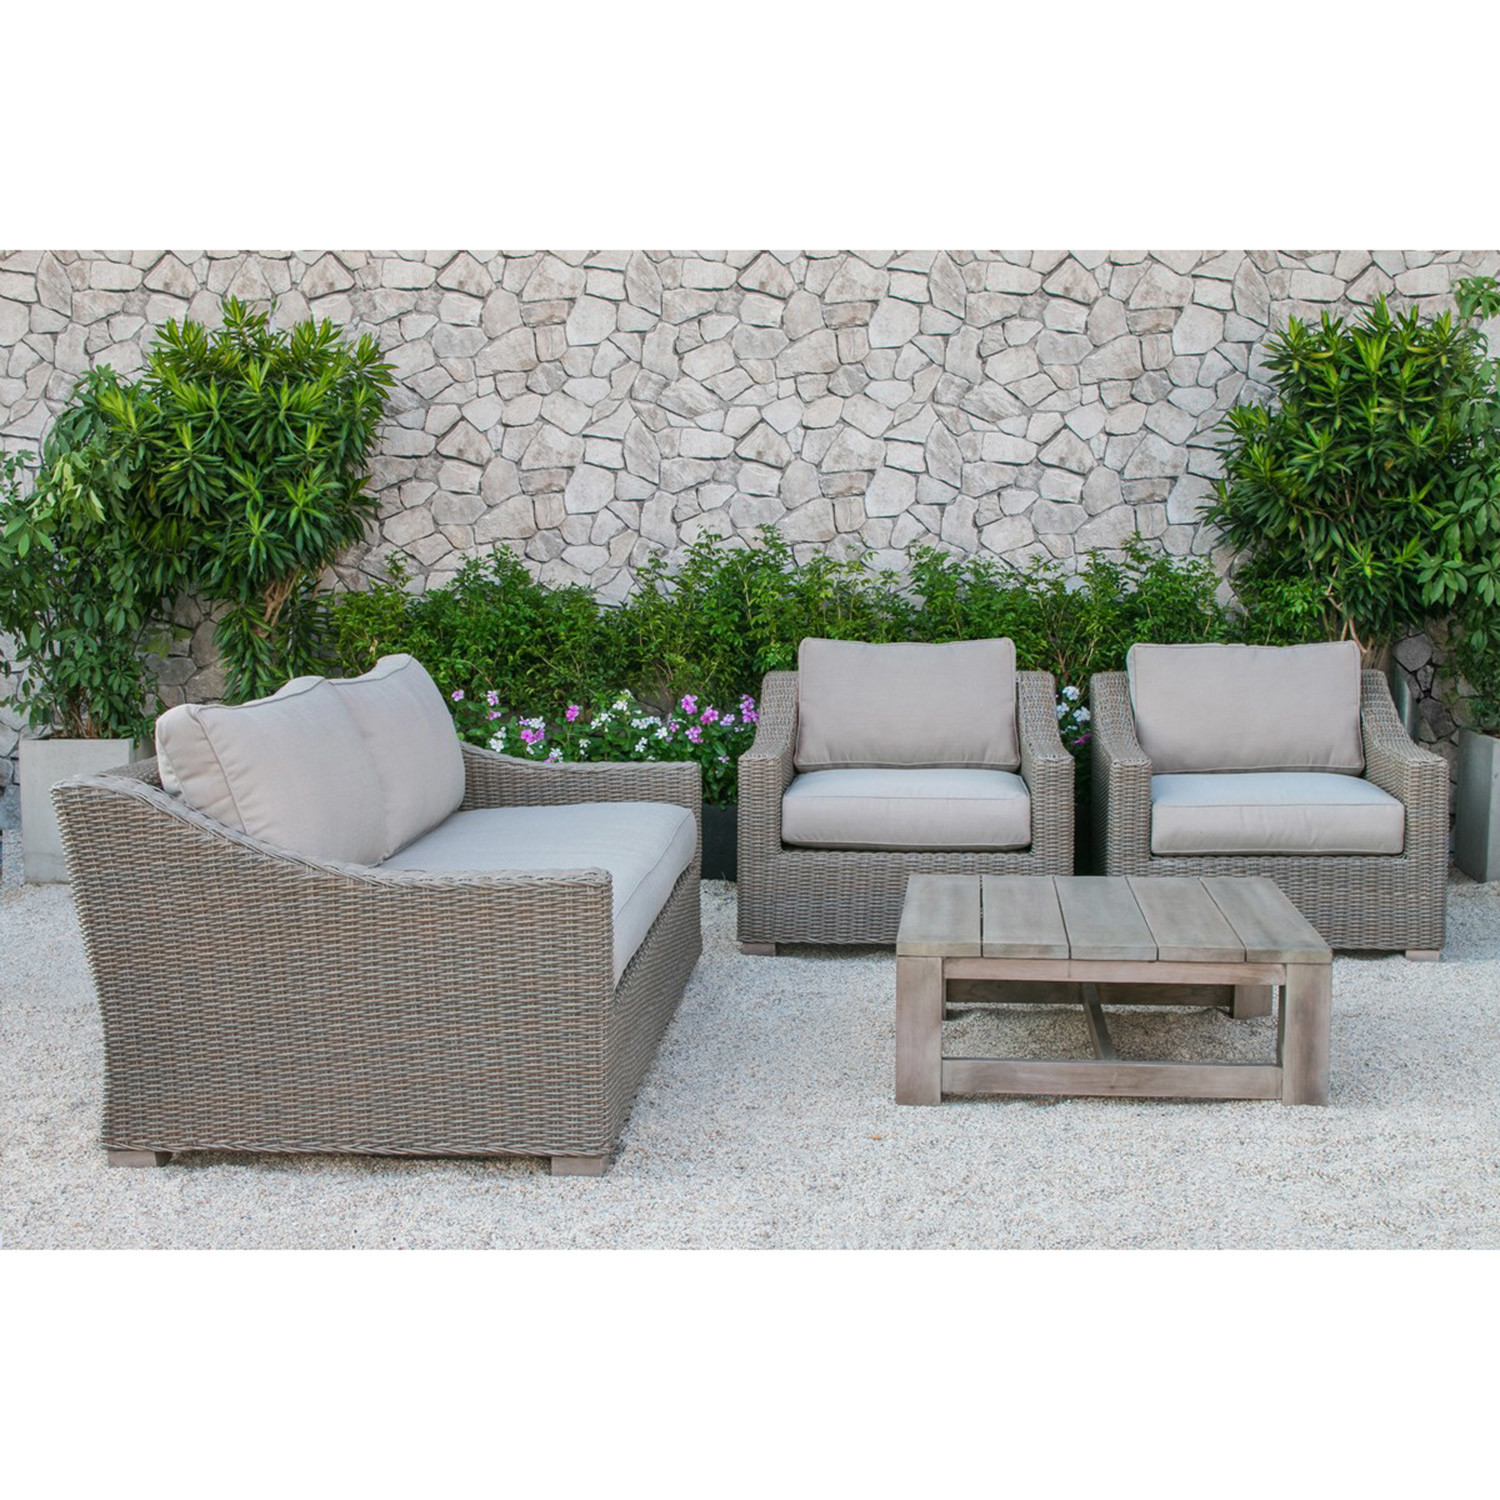 montclair all weather wicker sectional sofa set click clack faux leather bed renava palisades outdoor vig touch of